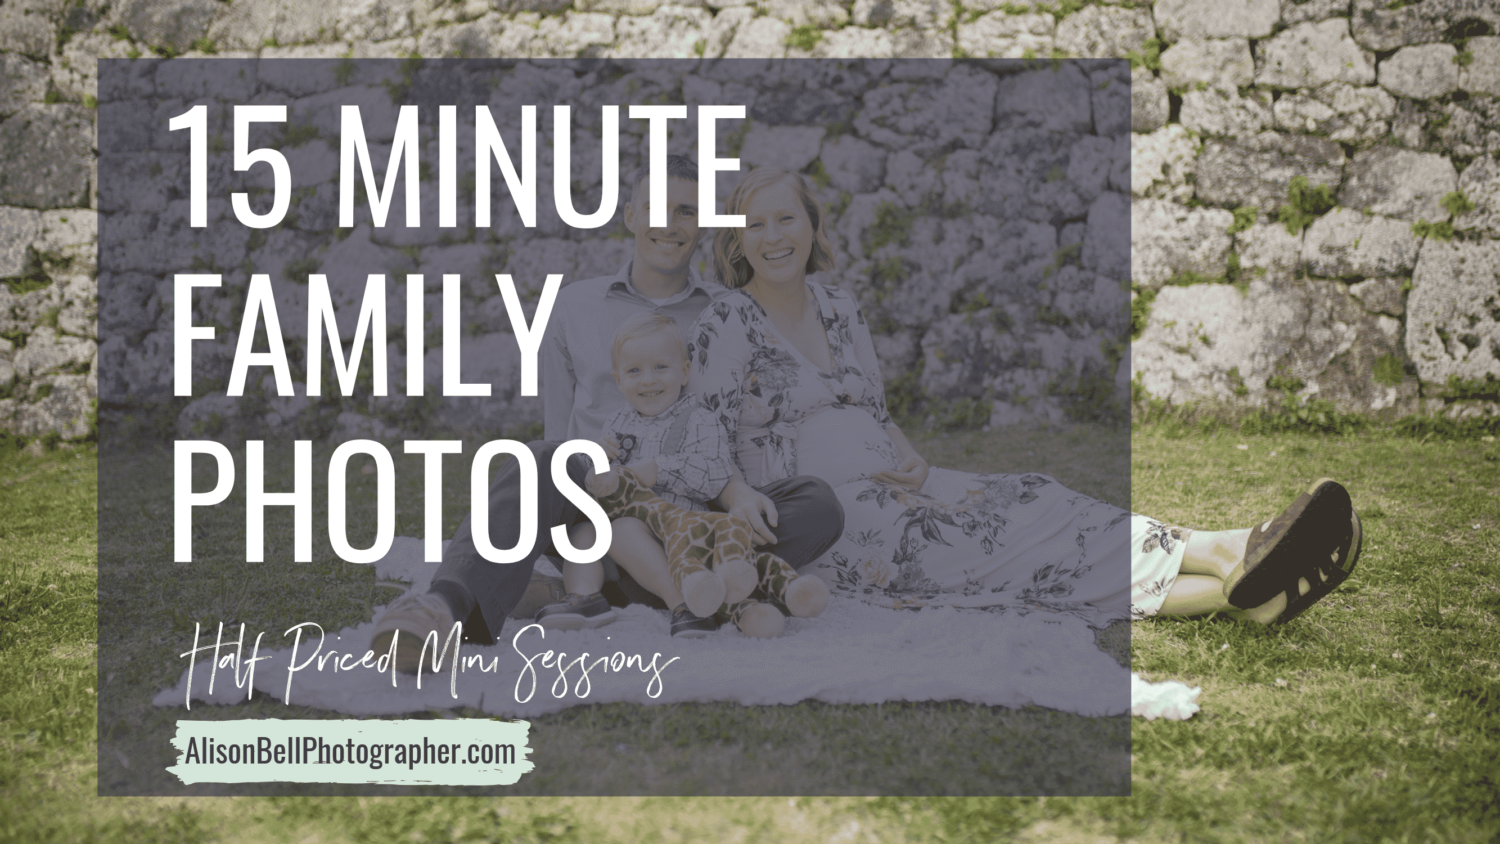 Half Priced Mini sessions for family, kids, toddlers, infants, one year old, maternity by Alison Bell, photographer.